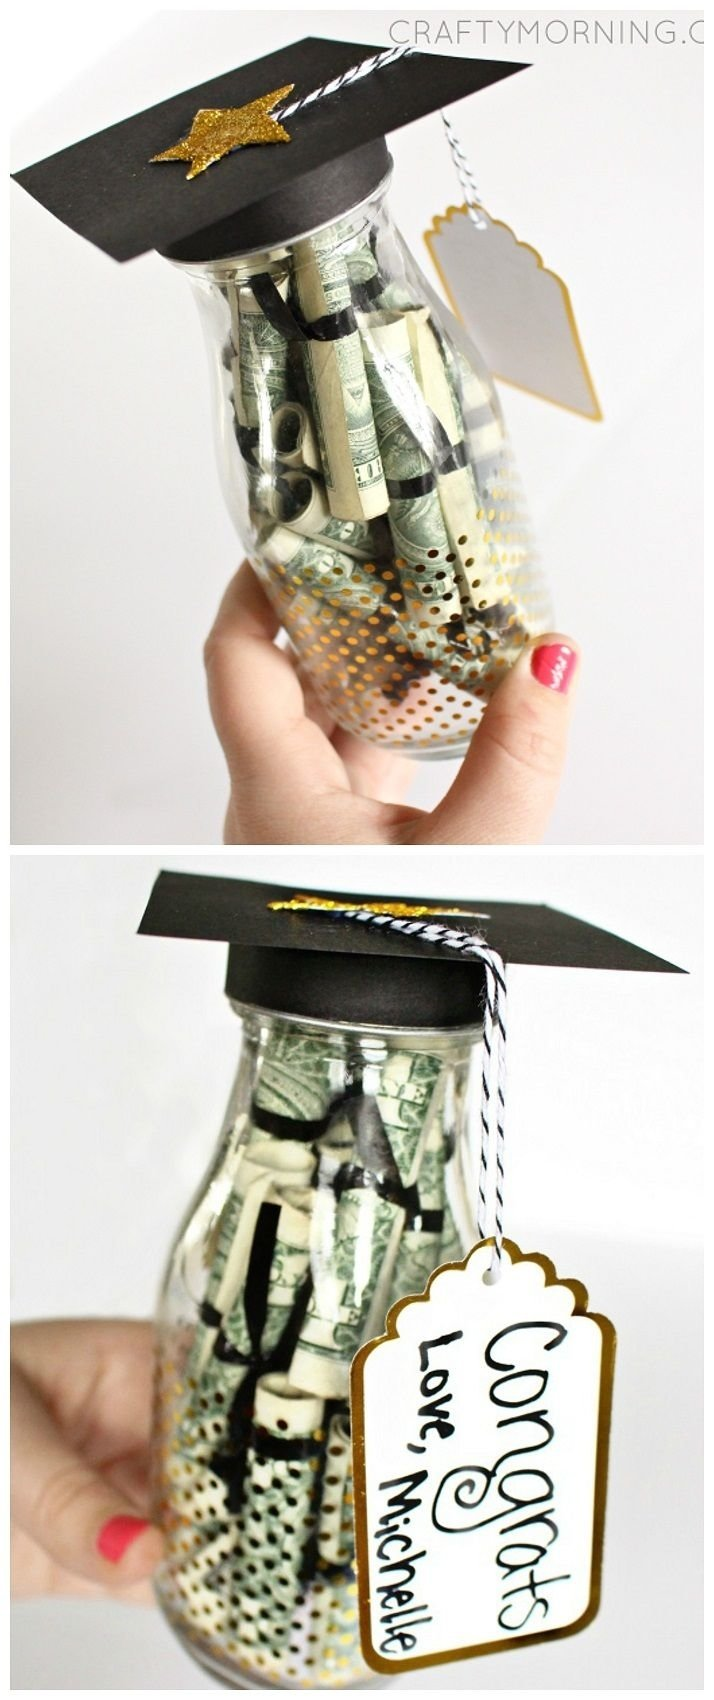 10 Attractive College Graduation Gift Ideas For Son graduation glass bottle gift dollar bill diplomas perfect for 11 2021